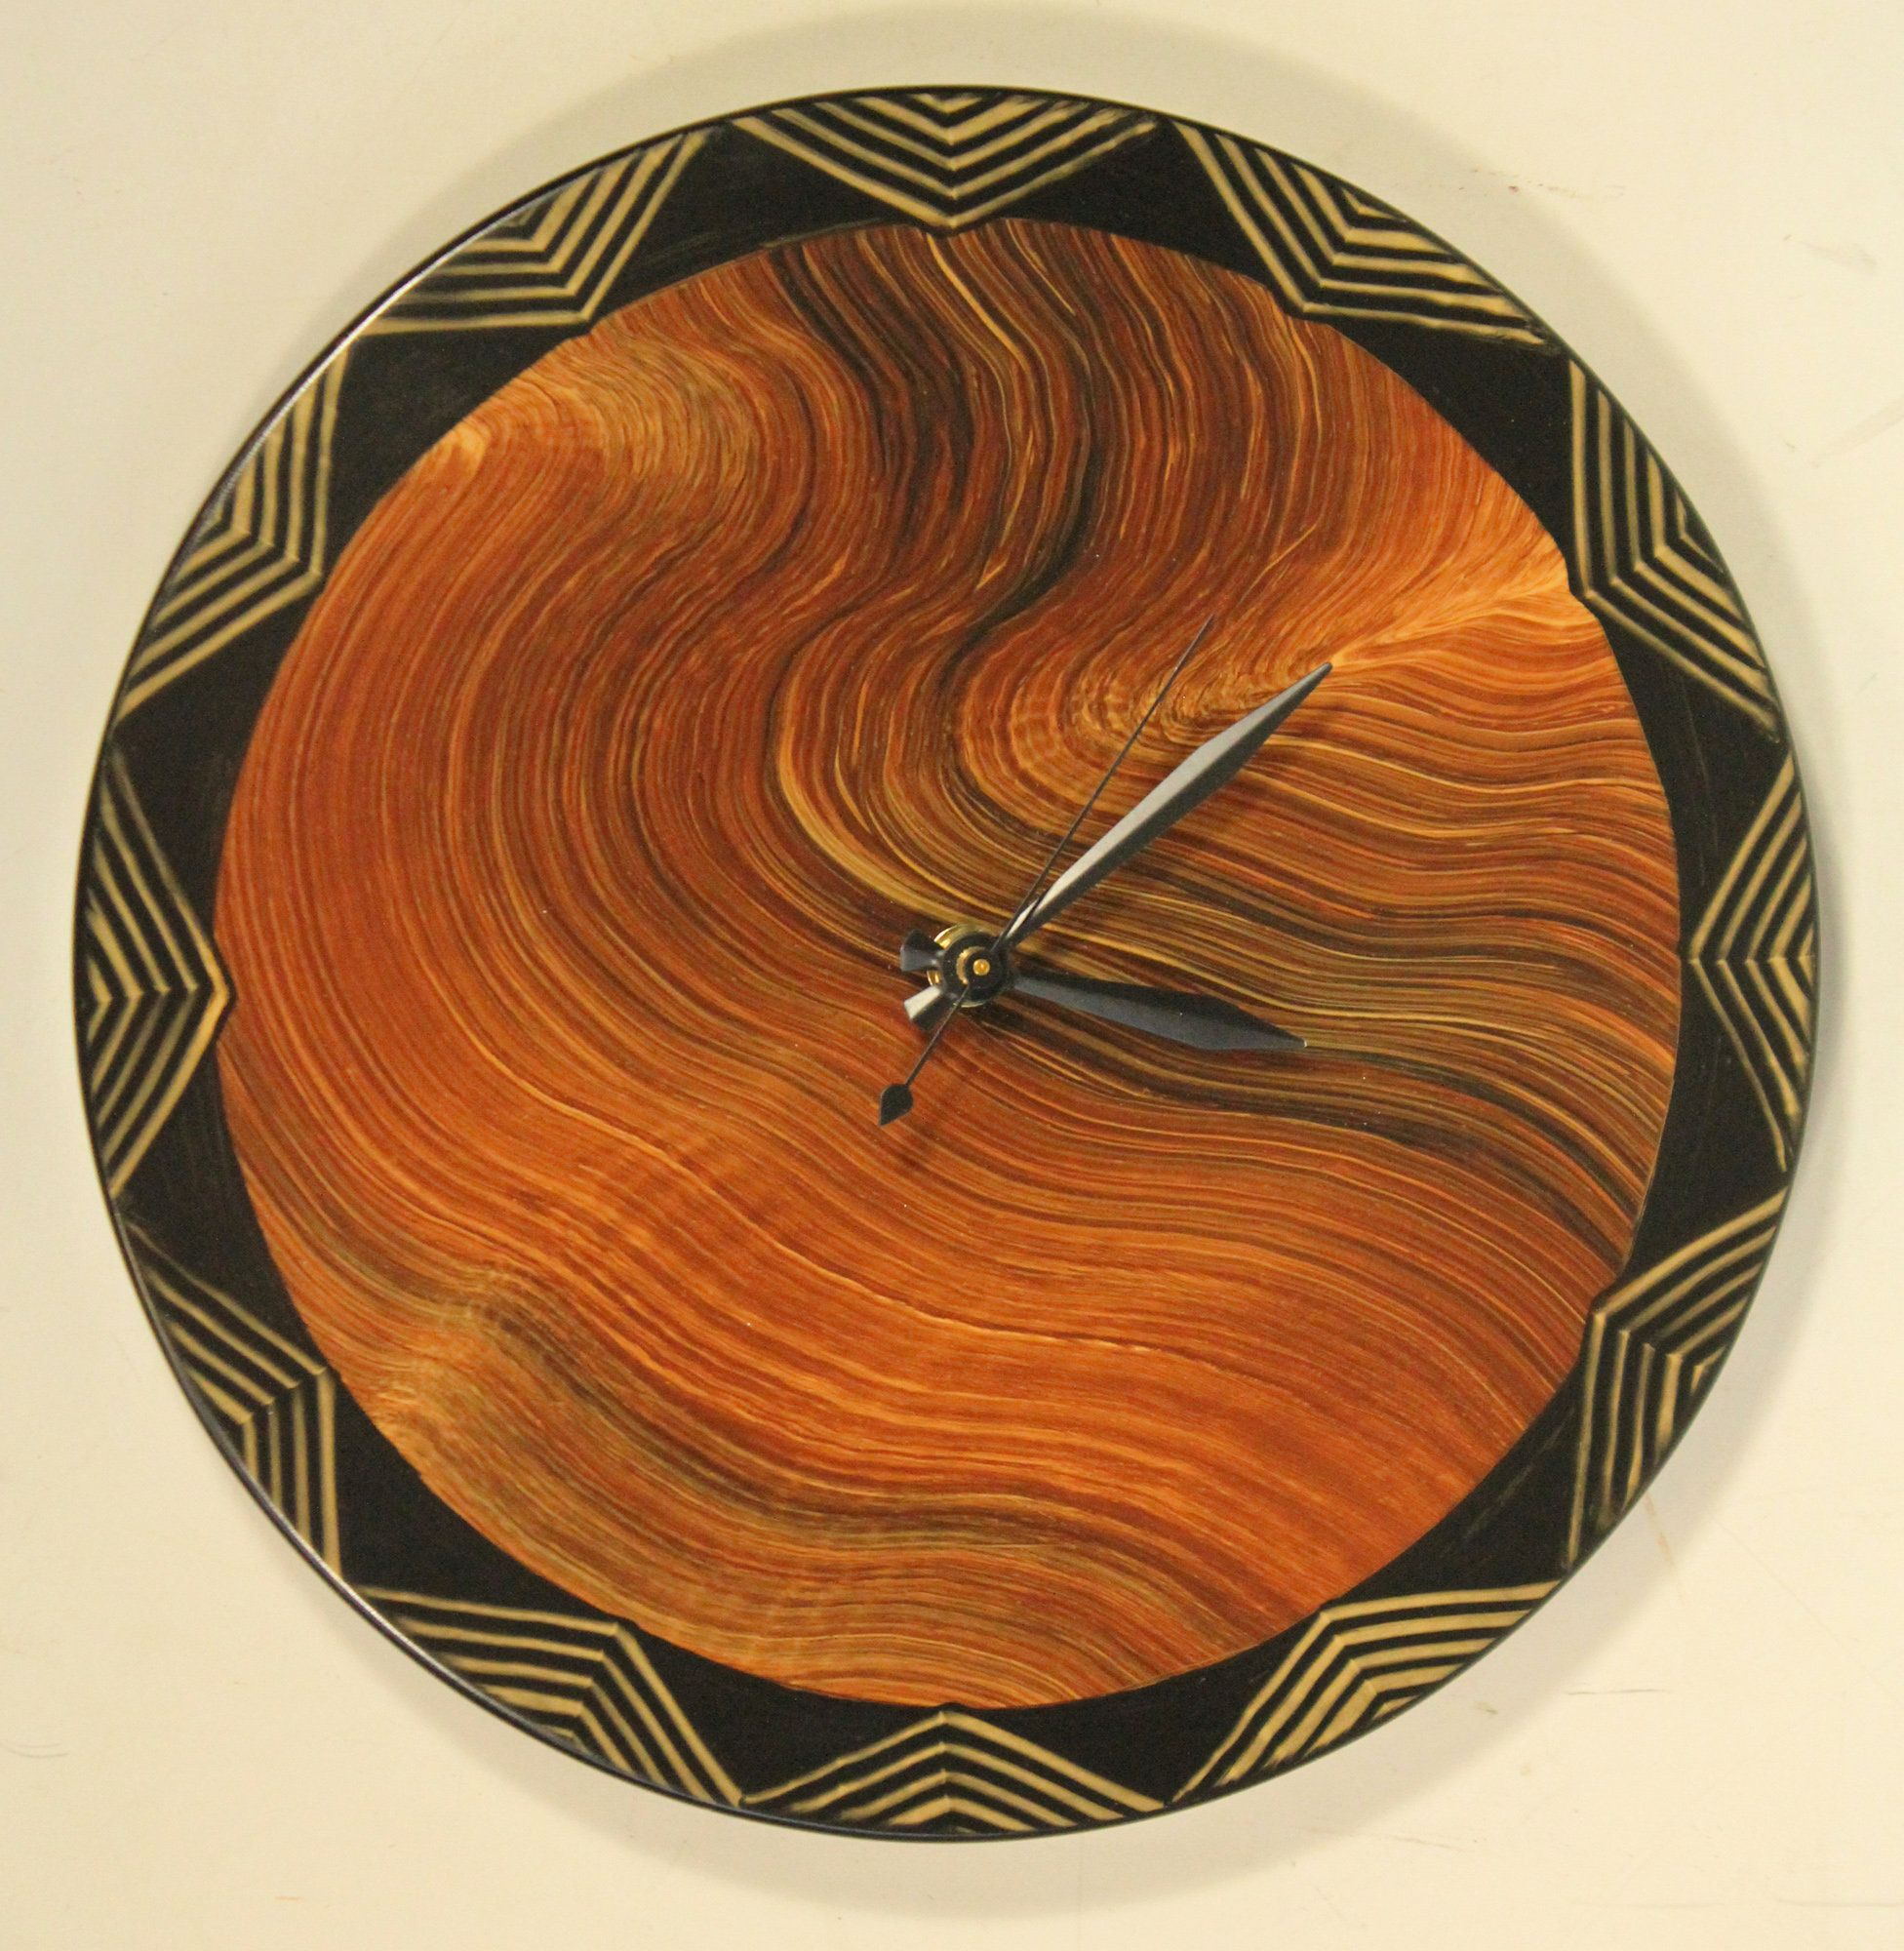 Australia wall clock by ingela noren and daniel grant painted australia wall clock by ingela noren and daniel grant painted wood clock amipublicfo Image collections